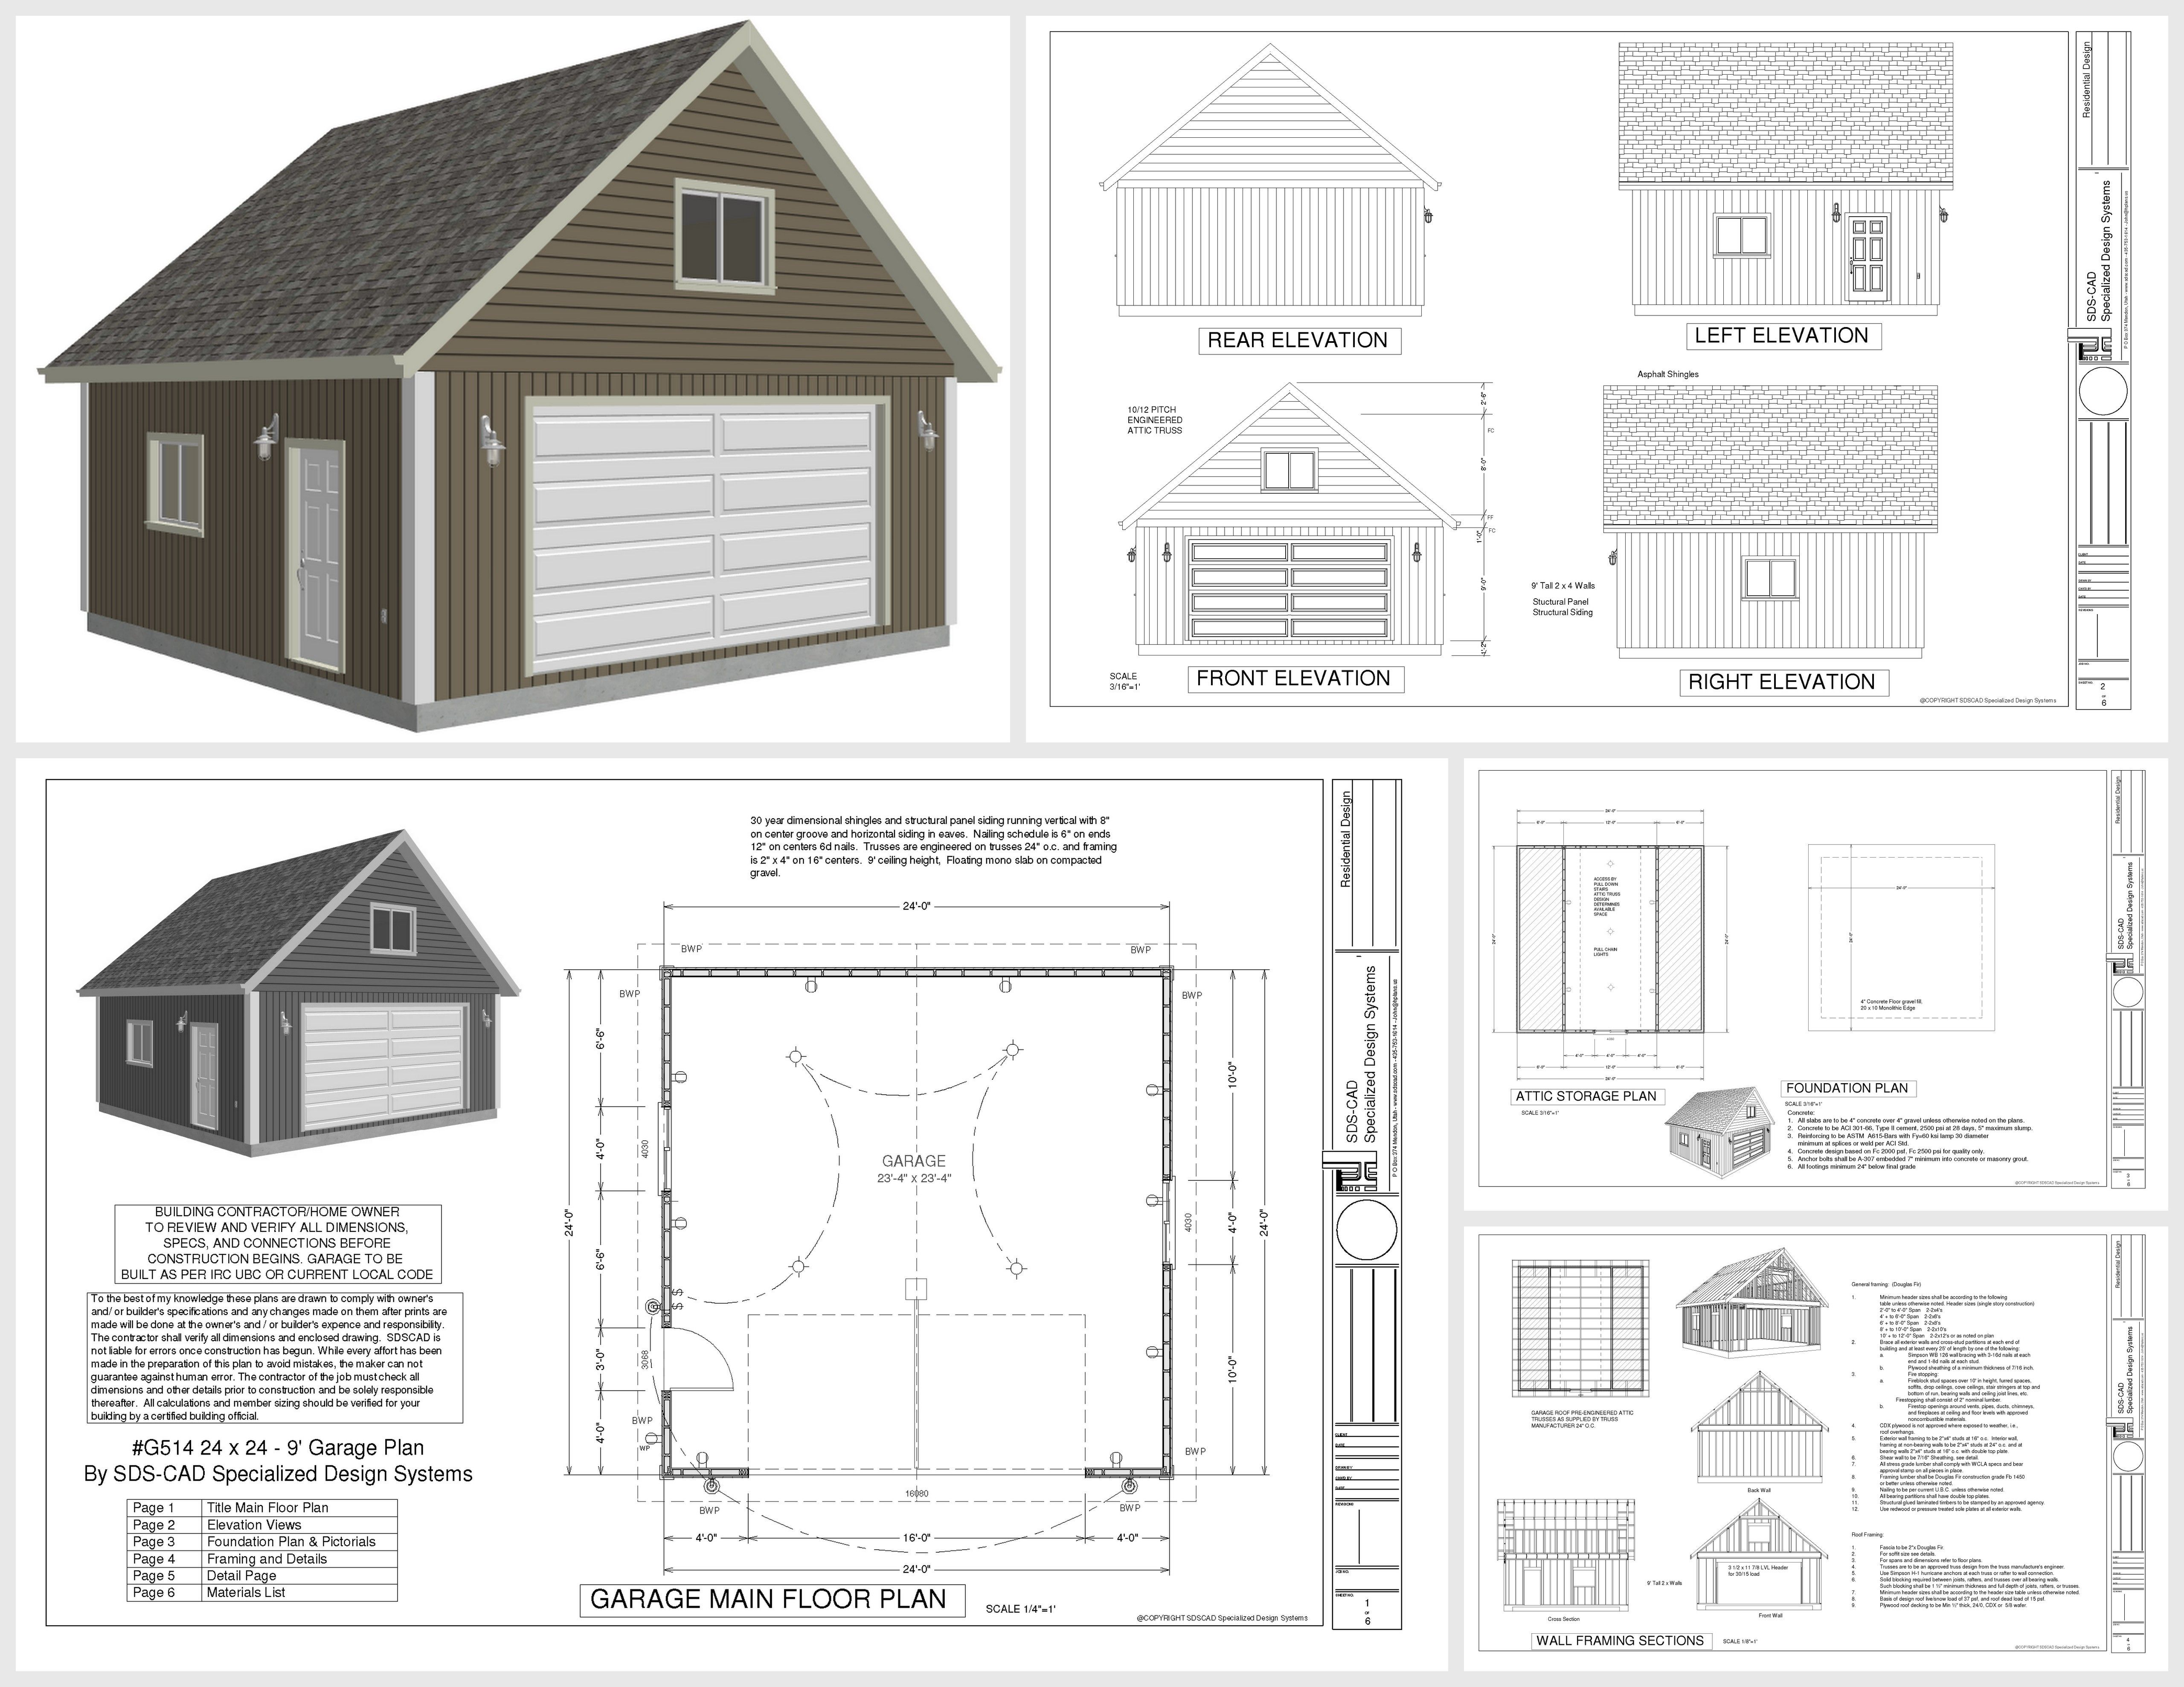 g514 24 x 24 x 9 loft garage plans in pdf and dwg shops